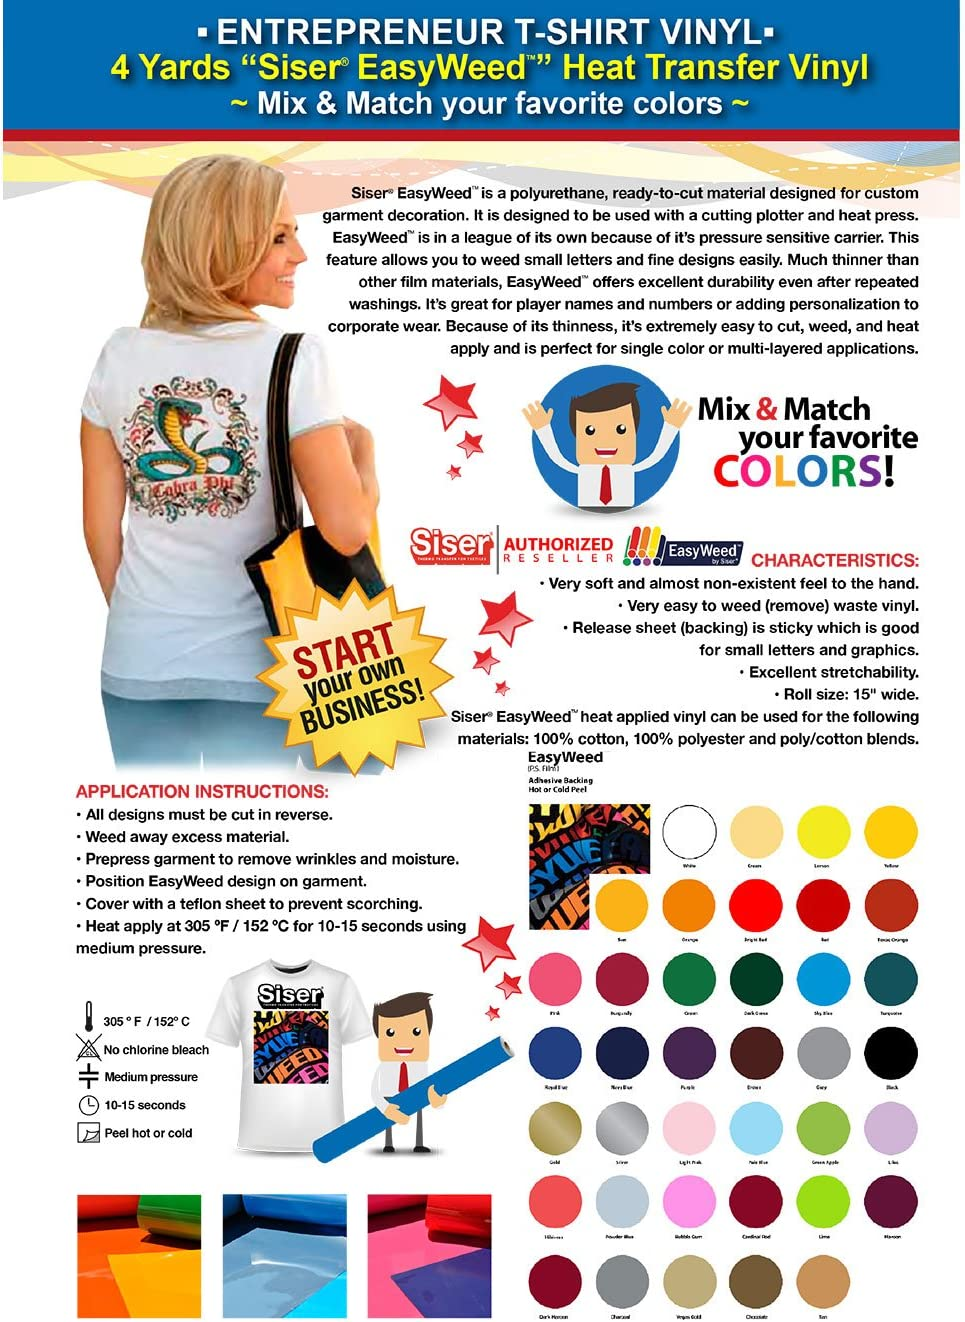 Siser EasyWeed Cash special price - GERCUTTER Store Entrepreneur Vinyl: 4 T-Shirt Limited time trial price